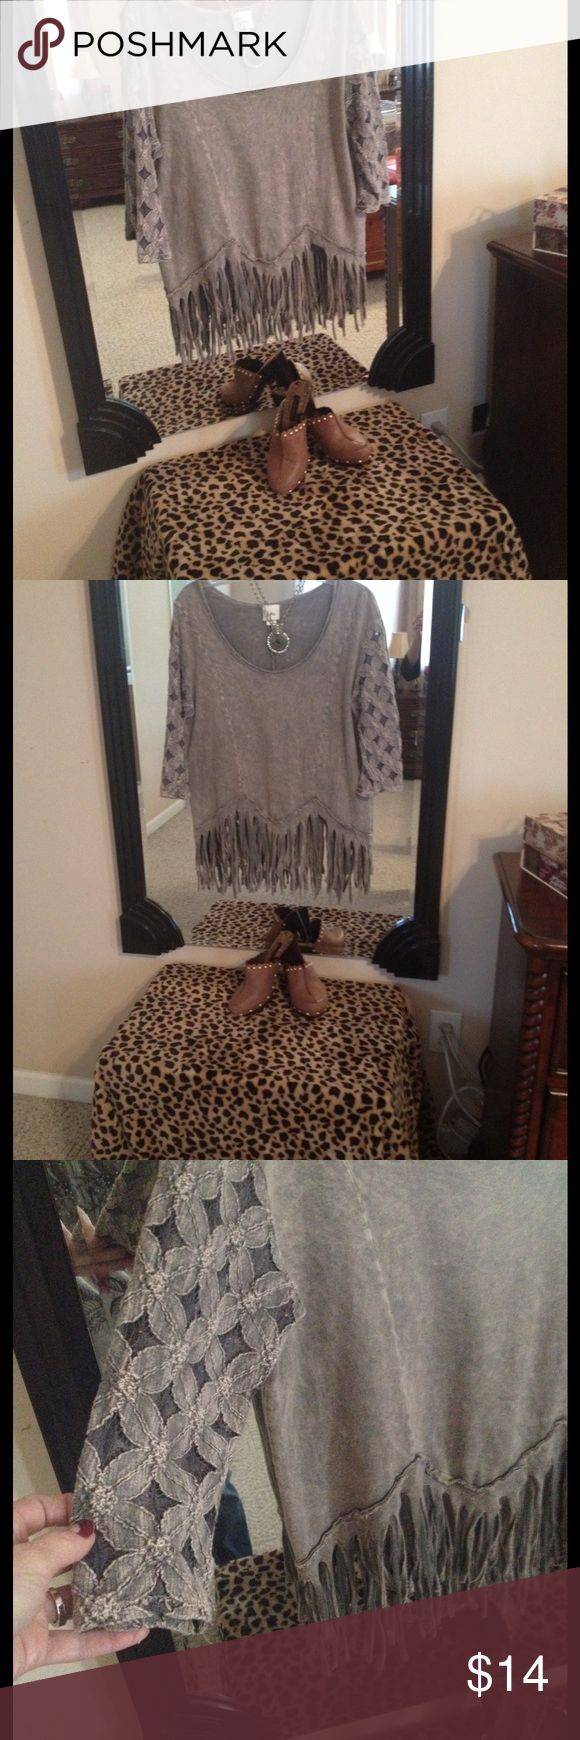 DAYTRIP TOP BEAUTIFUL DAYTRIP TOP SIZE MEDIUM MINT CONDITION HAS SHREDDING AT THE BOTTOM, THREE QUARTER LENGTH SLEEVES AND LACE DETAIL ON SLEEVES TOPE COLOR Daytrip Tops Tunics